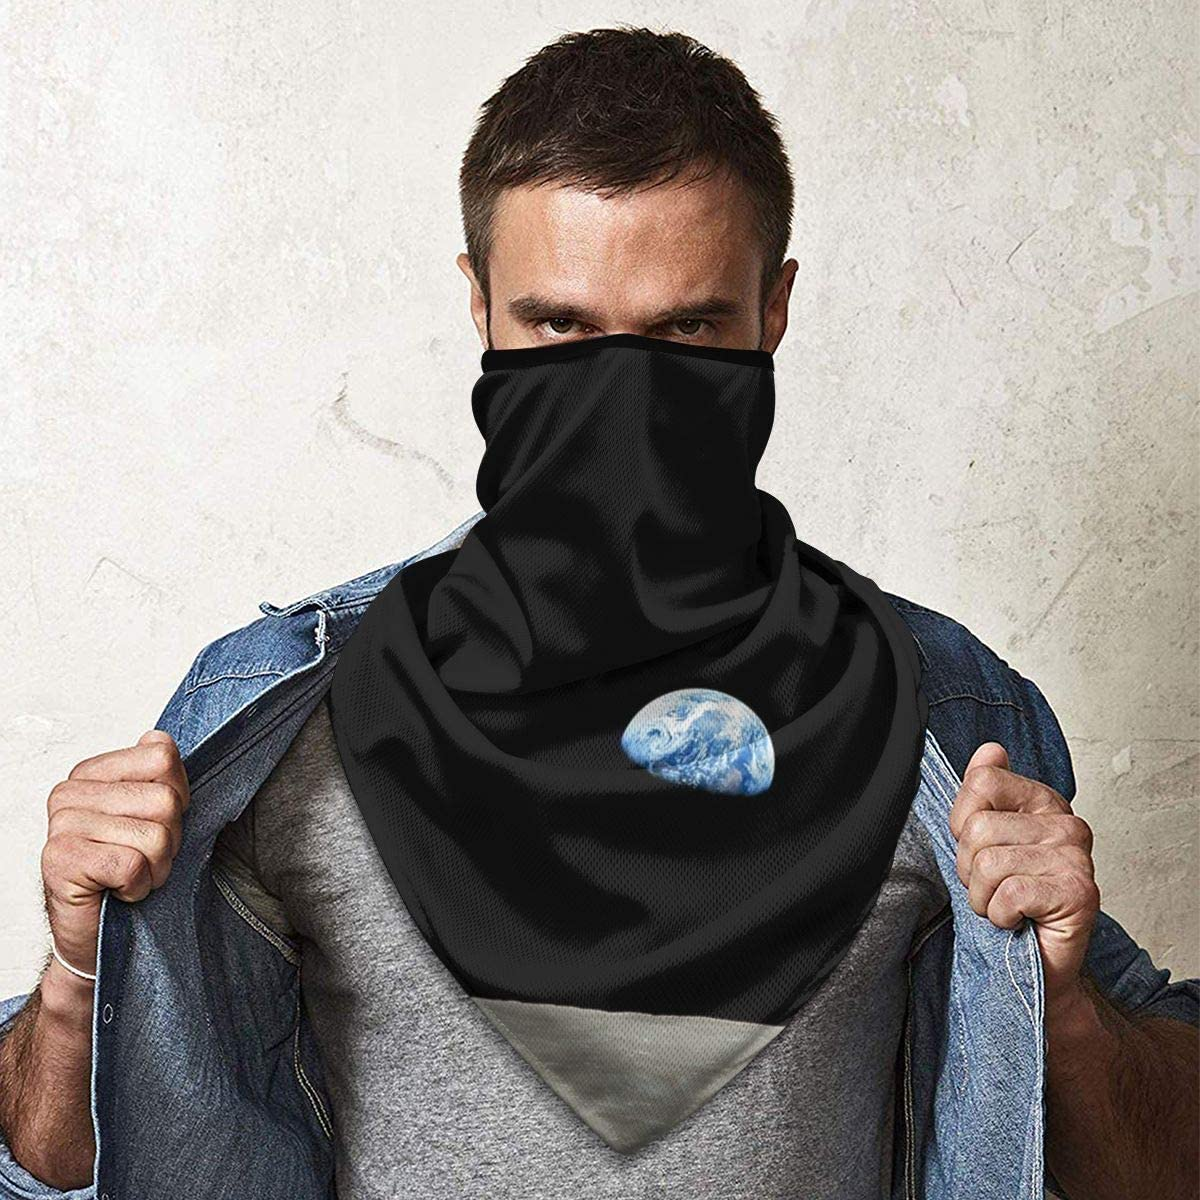 Wind-Resistant Face Mask/& Neck Gaiter,Balaclava Ski Masks,Breathable Tactical Hood,Windproof Face Warmer for Running,Motorcycling,Hiking-Apollo NASA Moon Mission Earthrise